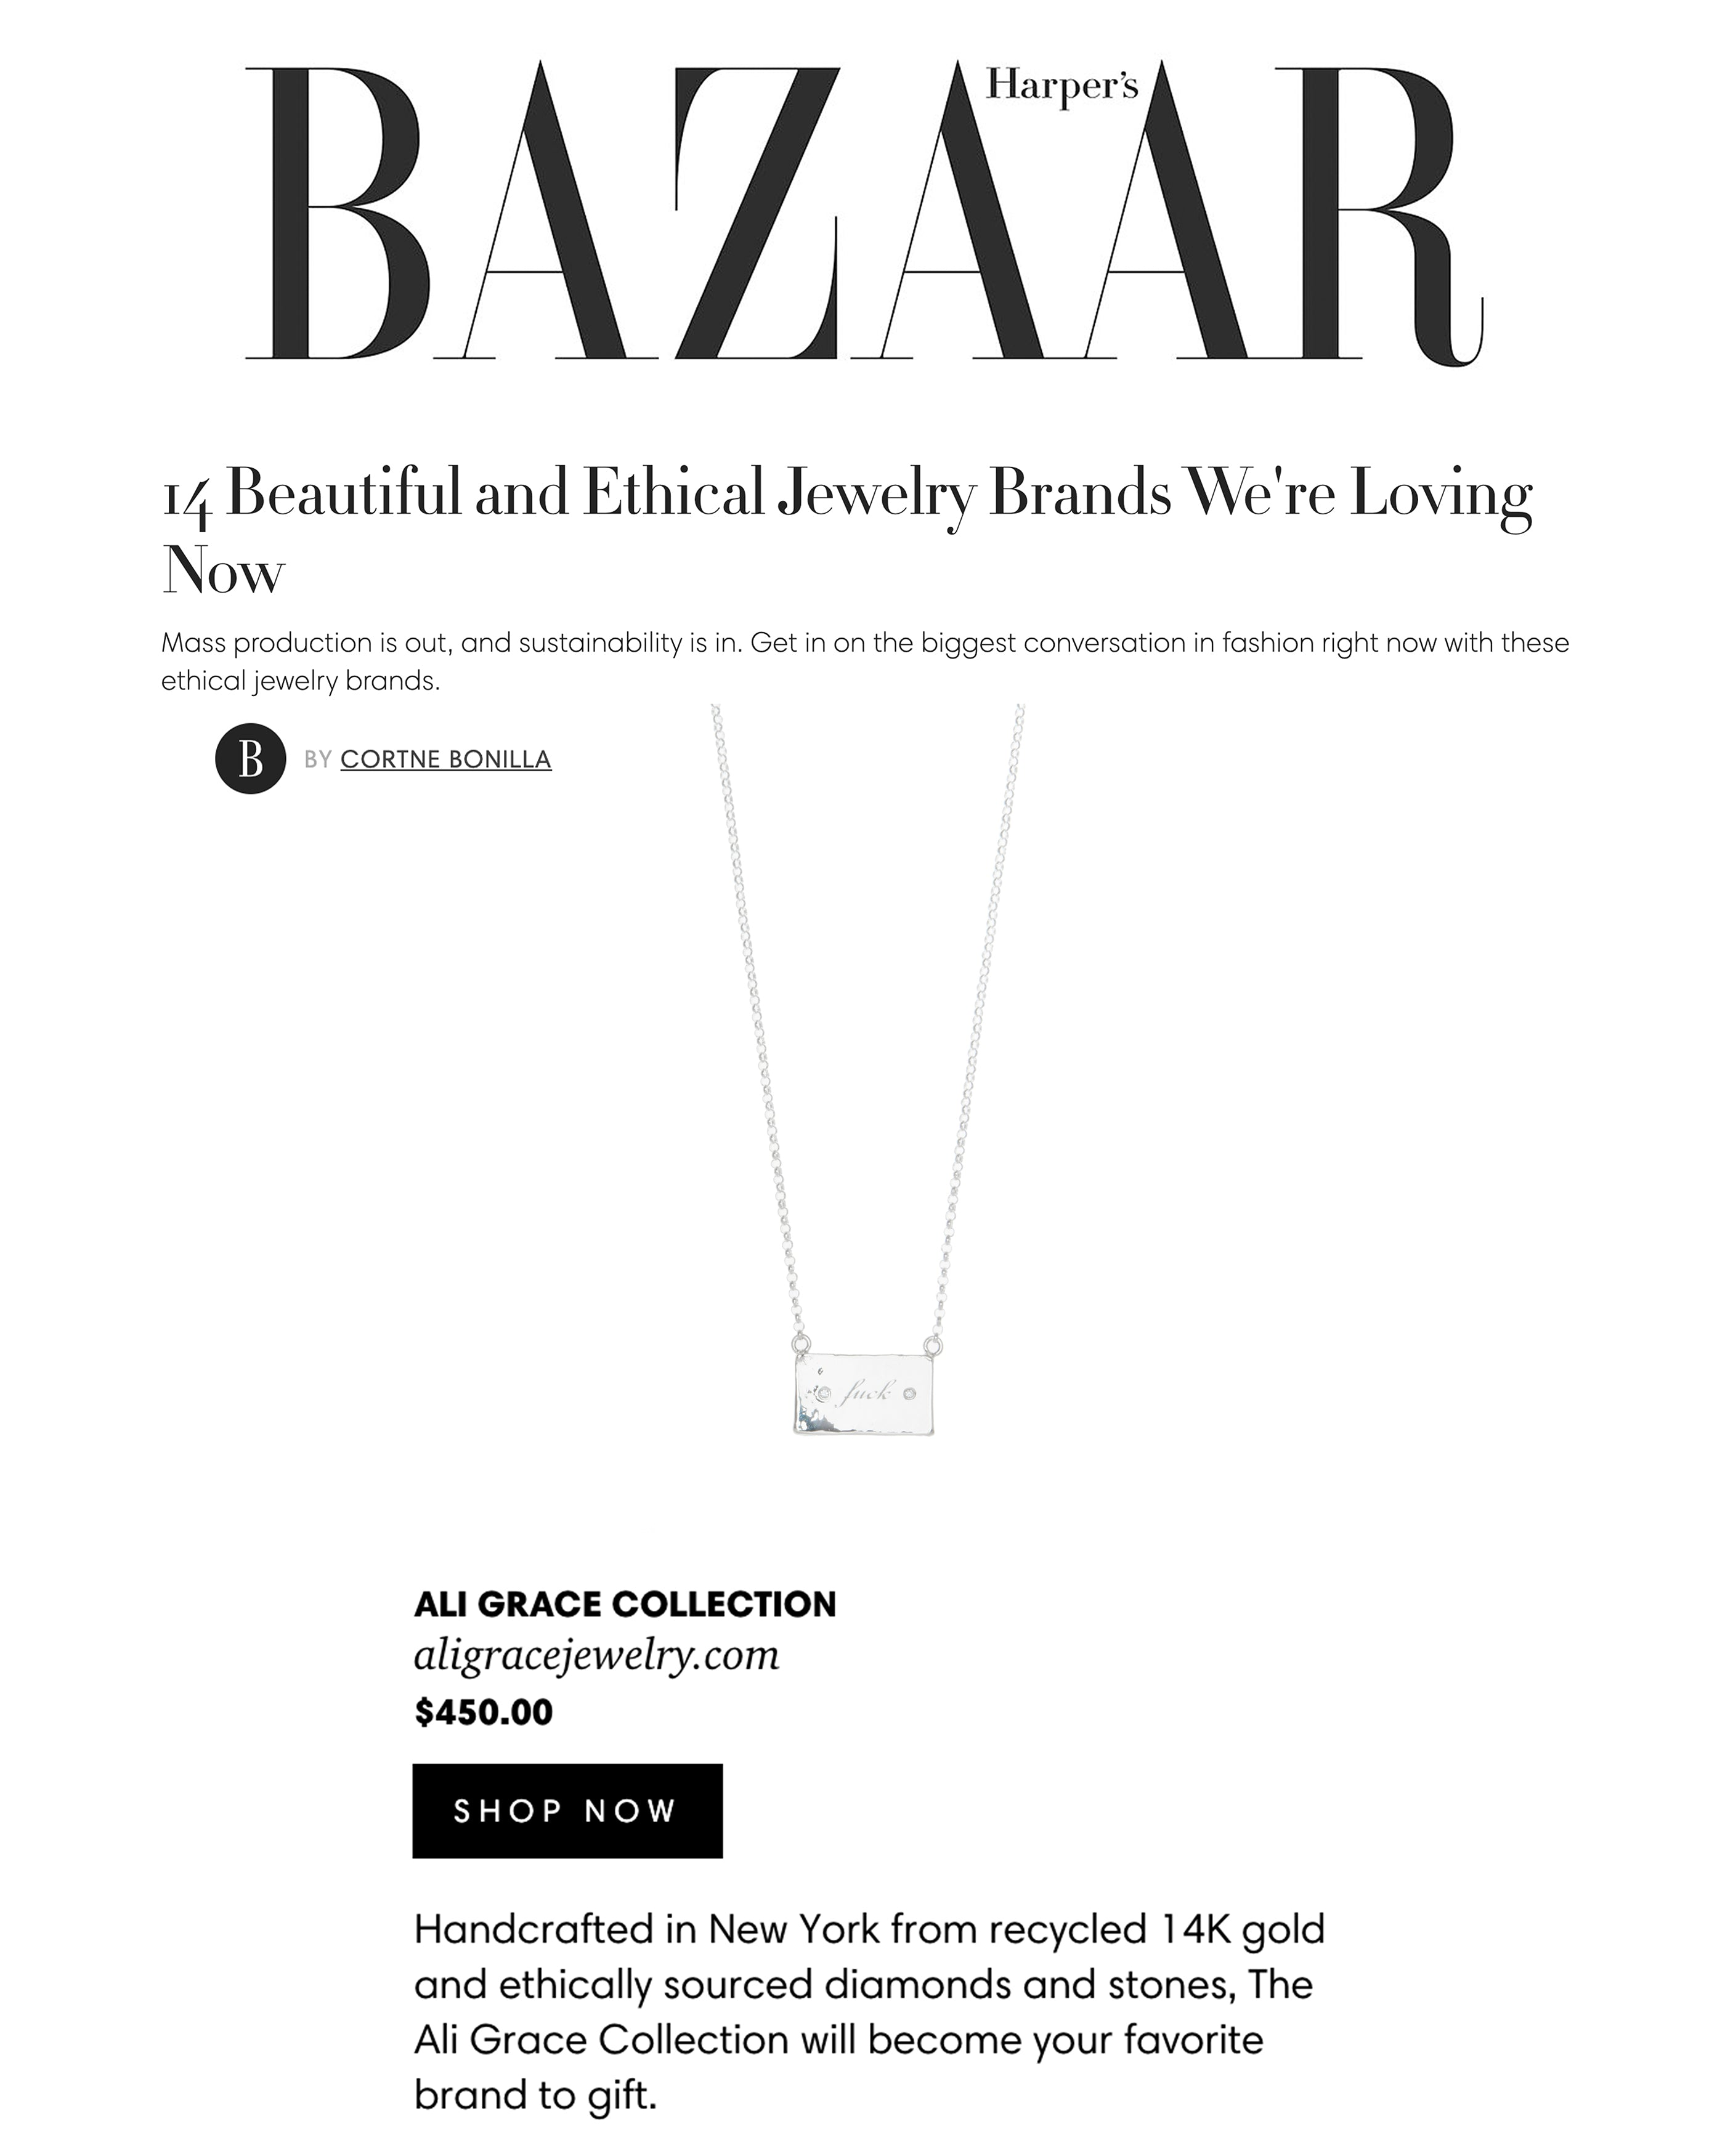 ali grace jewelry harpers bazaar sustainable gift guide jewelry ethical jewelry